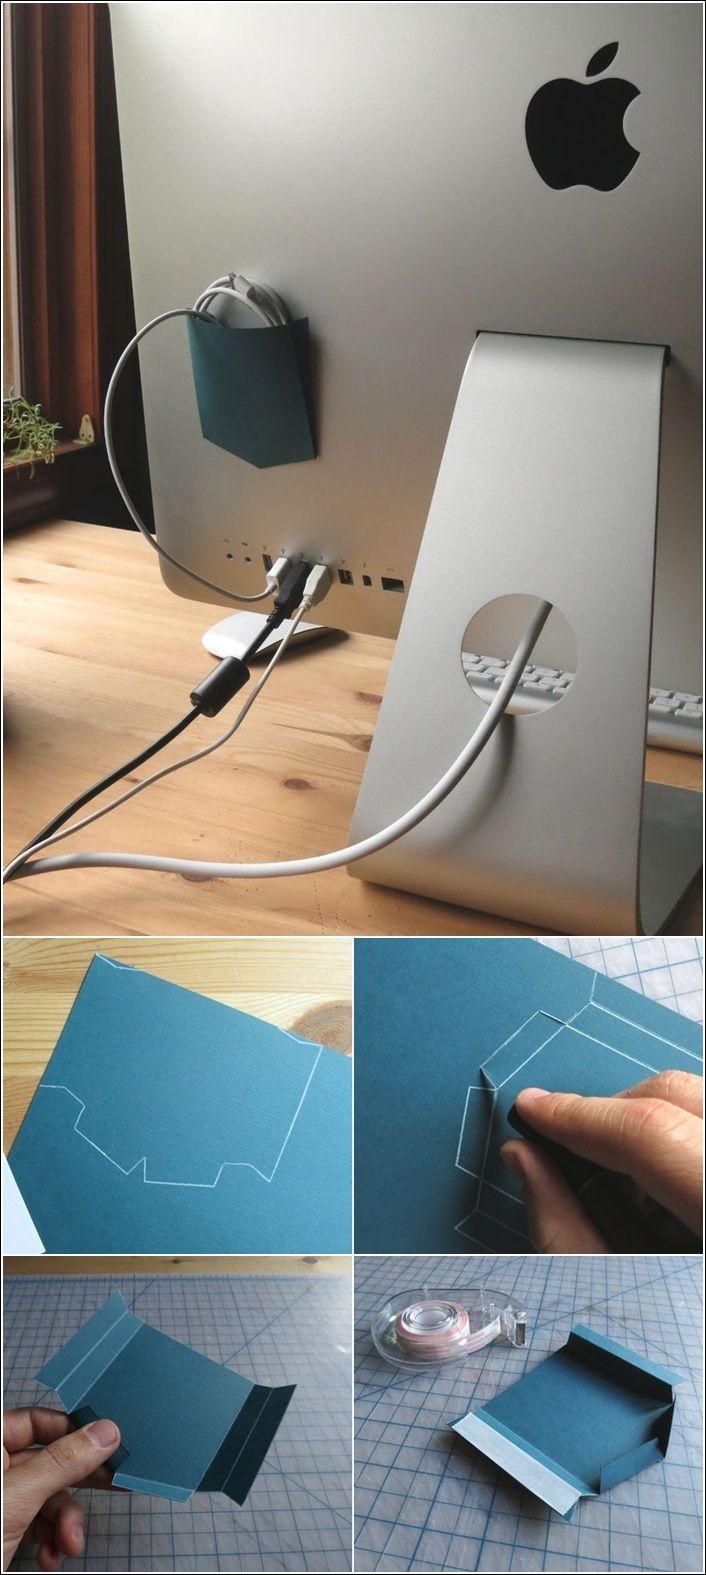 Paper Pocket for Loose Wires